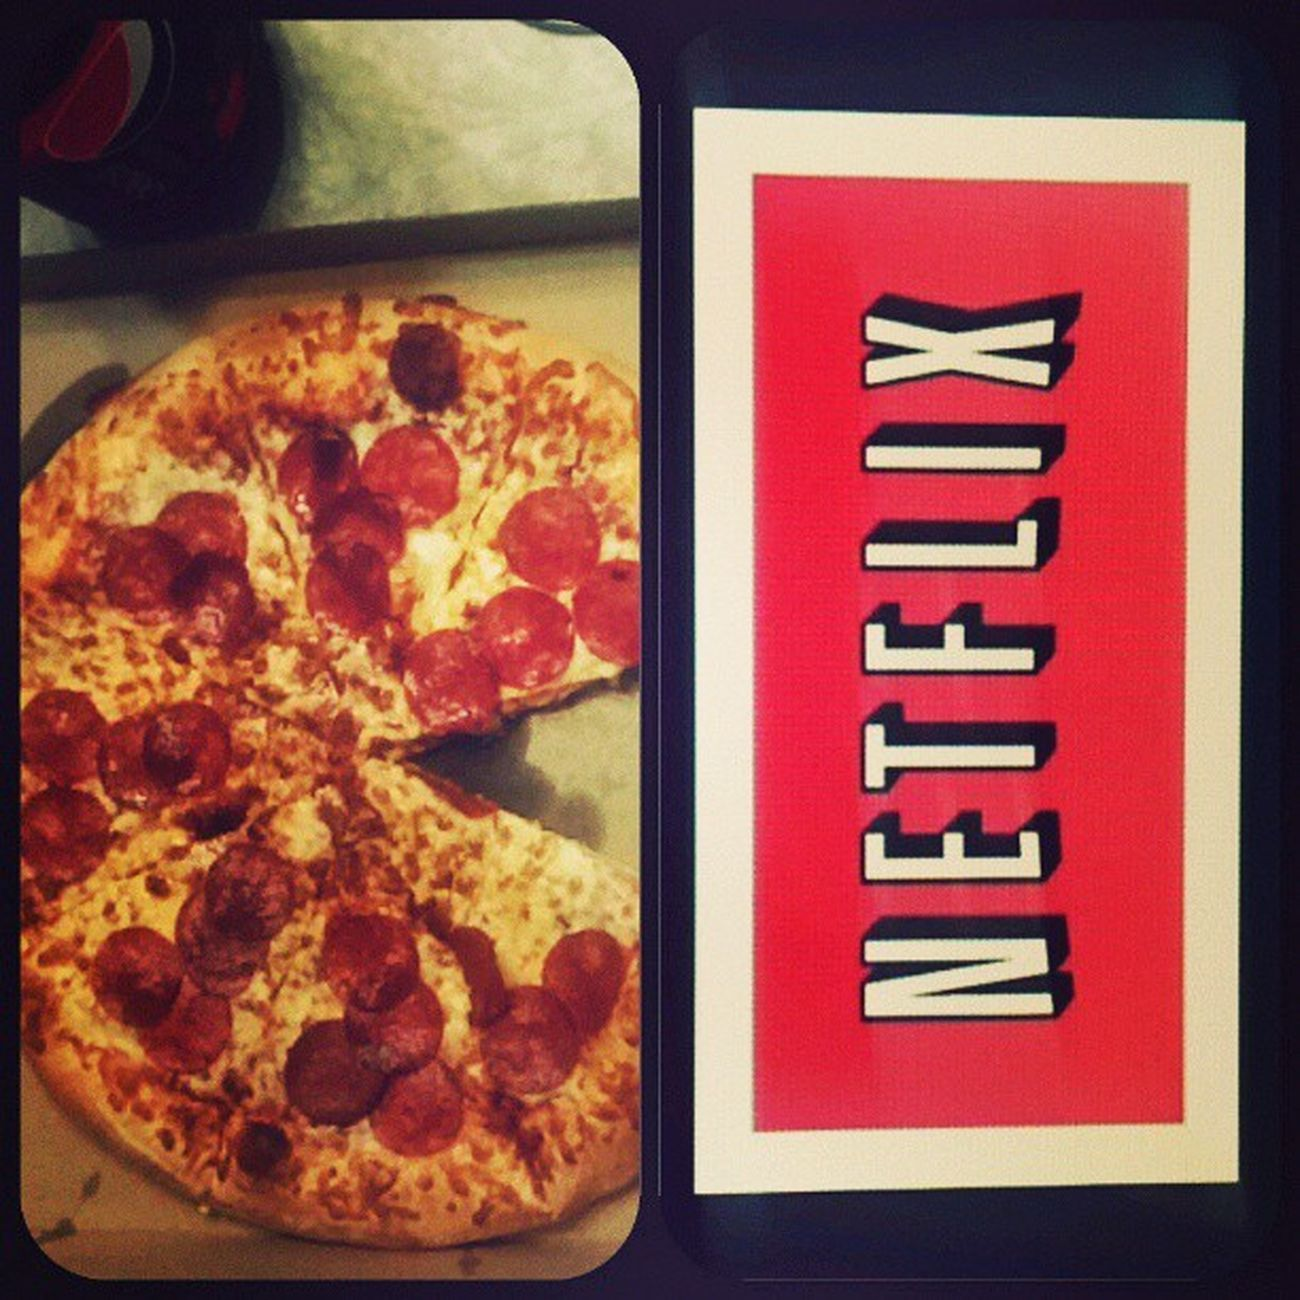 This is what dinner for one looks like. Dinnerforone Littlecaesers CherryPepsi Netflix Alone